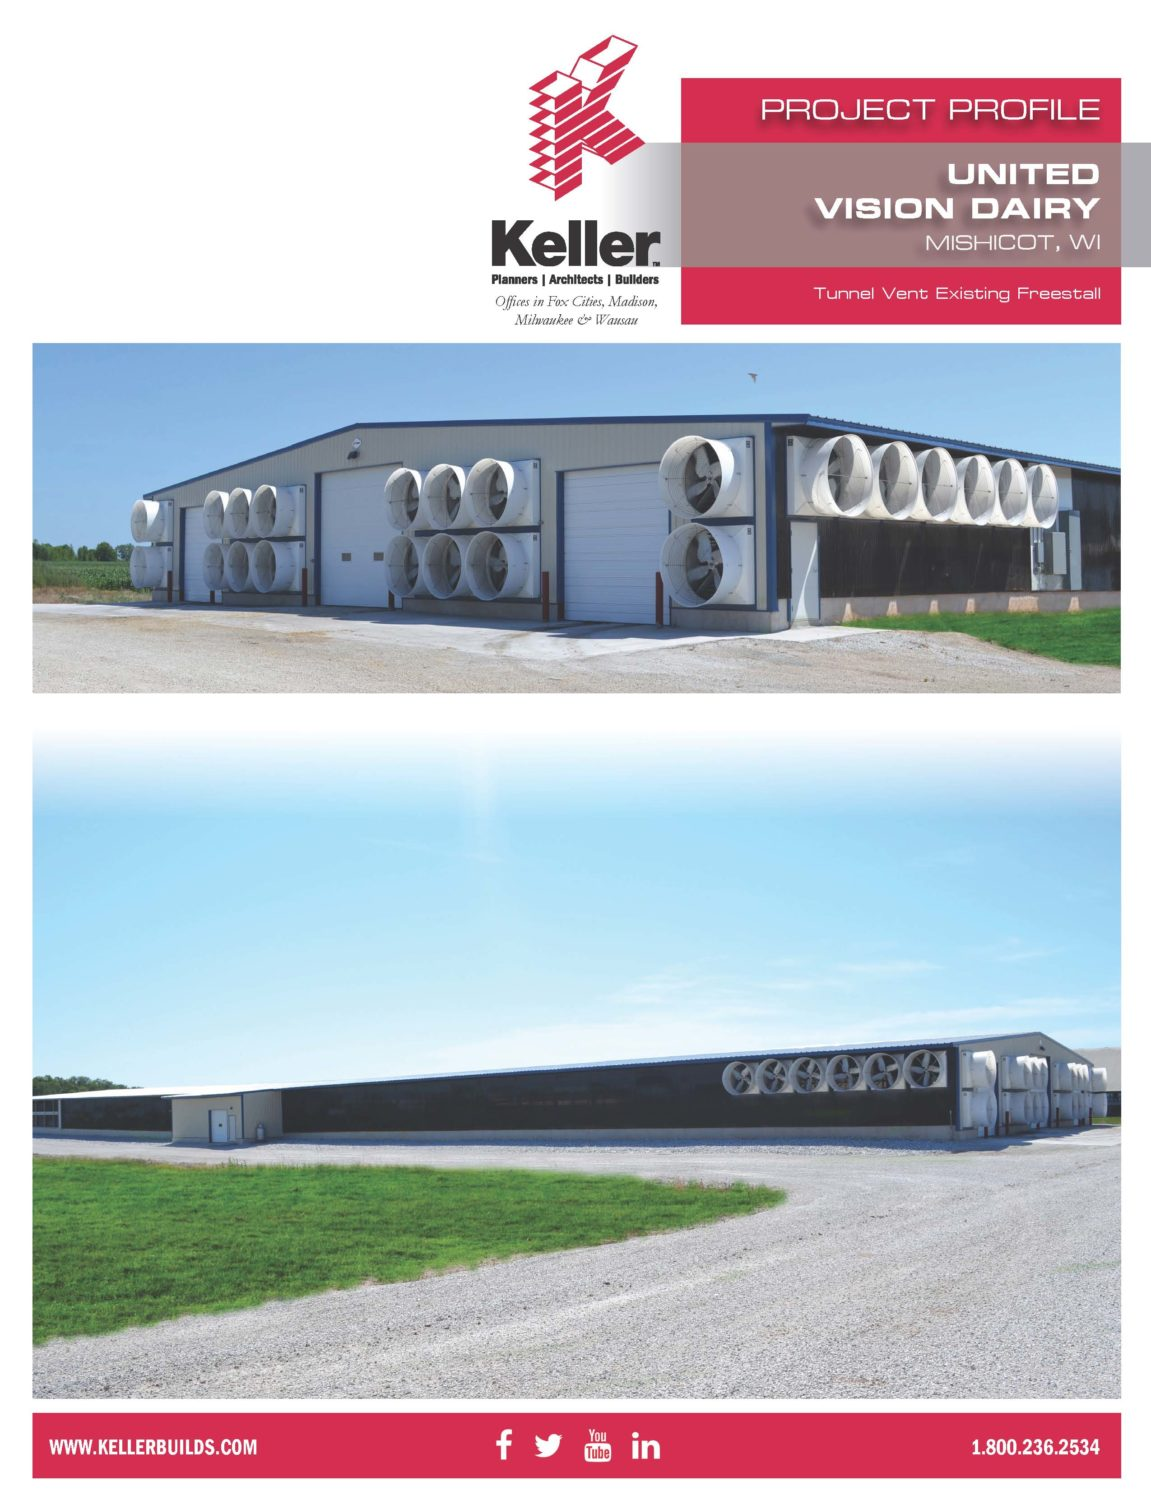 United Vision Dairy